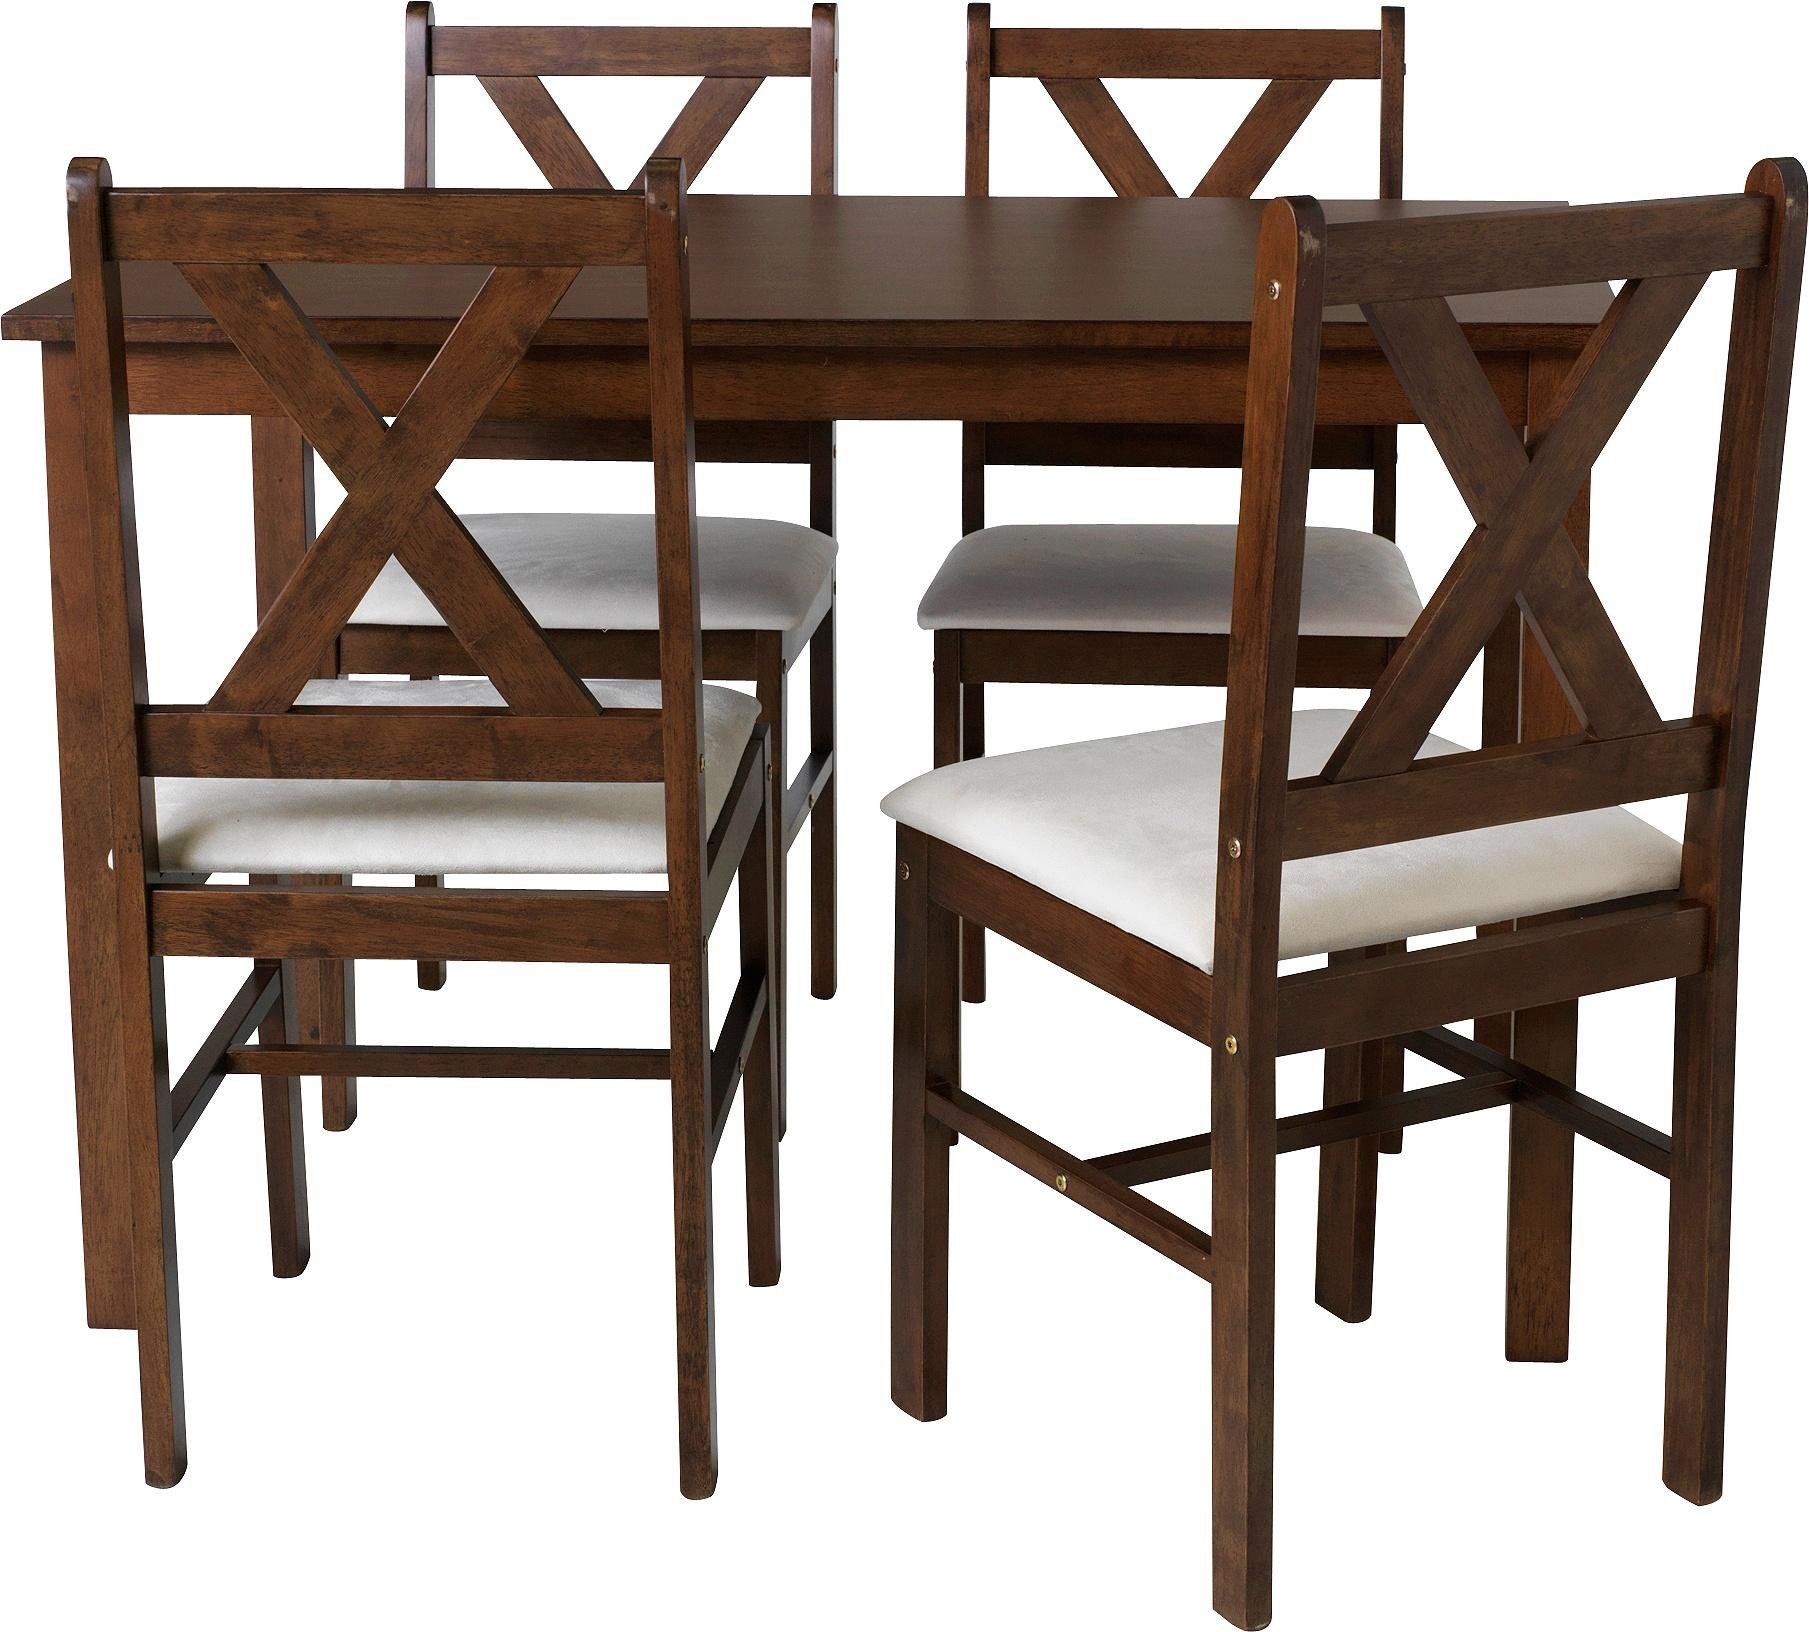 Argos Table And Chairs In Sale: SALE On HOME Ava Solid Walnut Dining Table & 4 Chairs